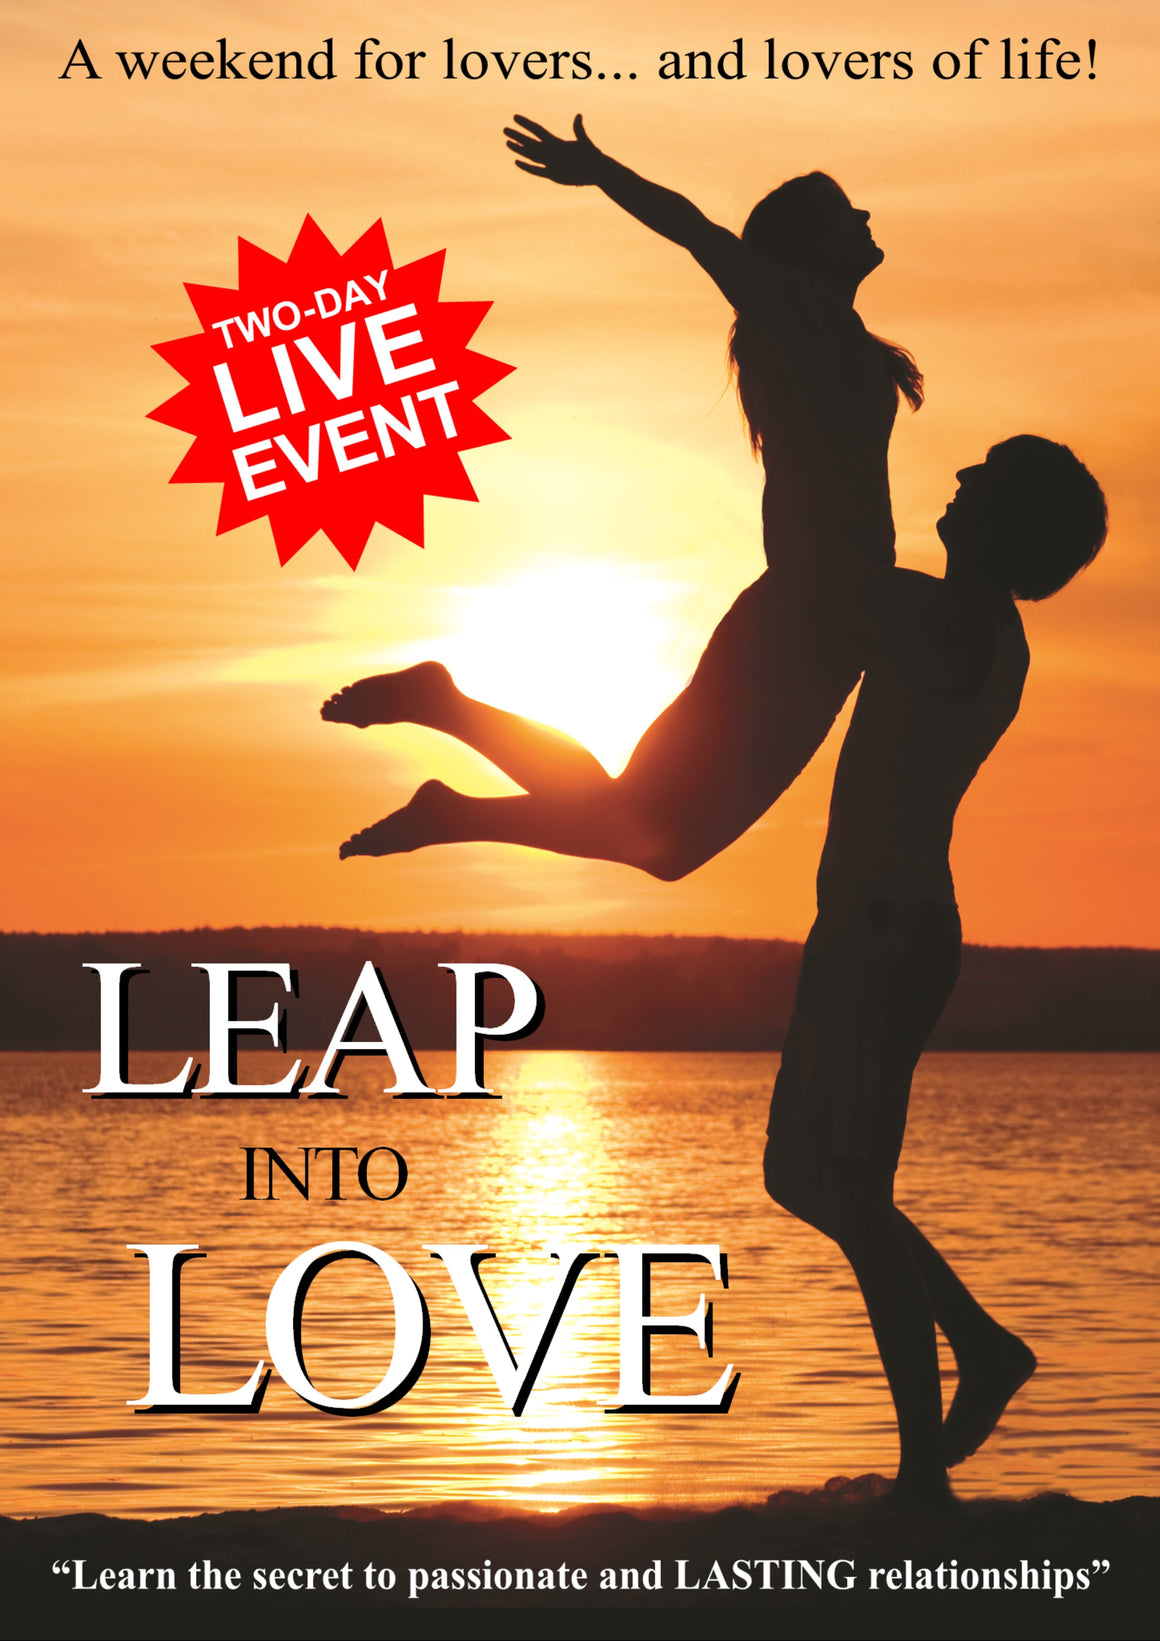 Live Event:  'Leap Into Love' two-day weekend retreat for singles and couples